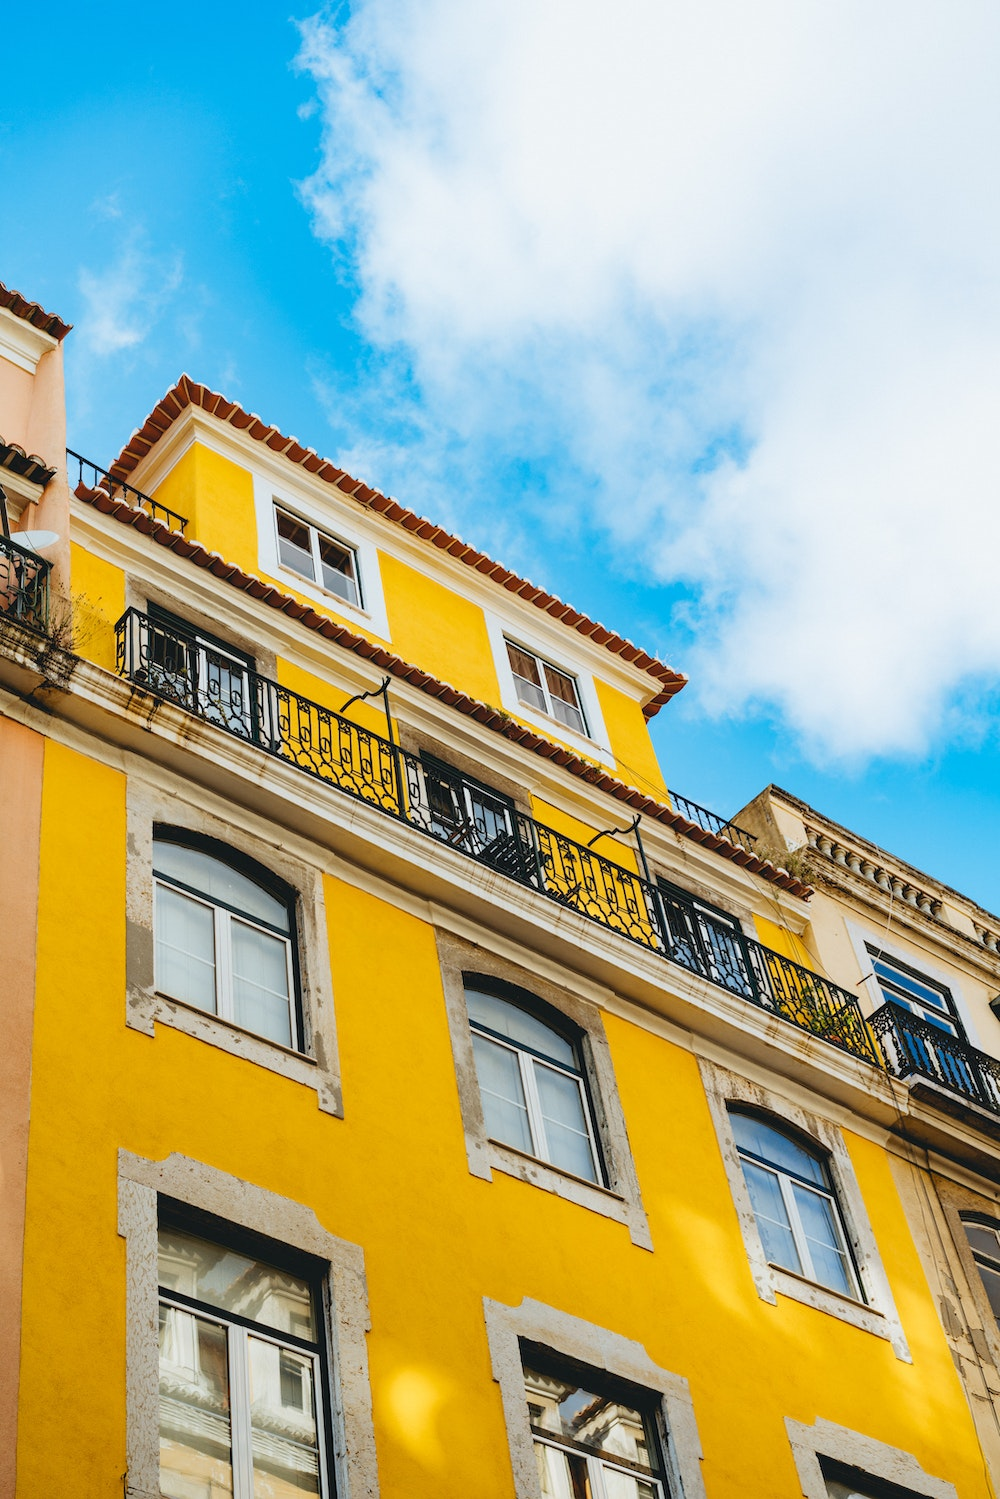 Yellow architecture and reflections near the Alfama in Lisbon, Portugal